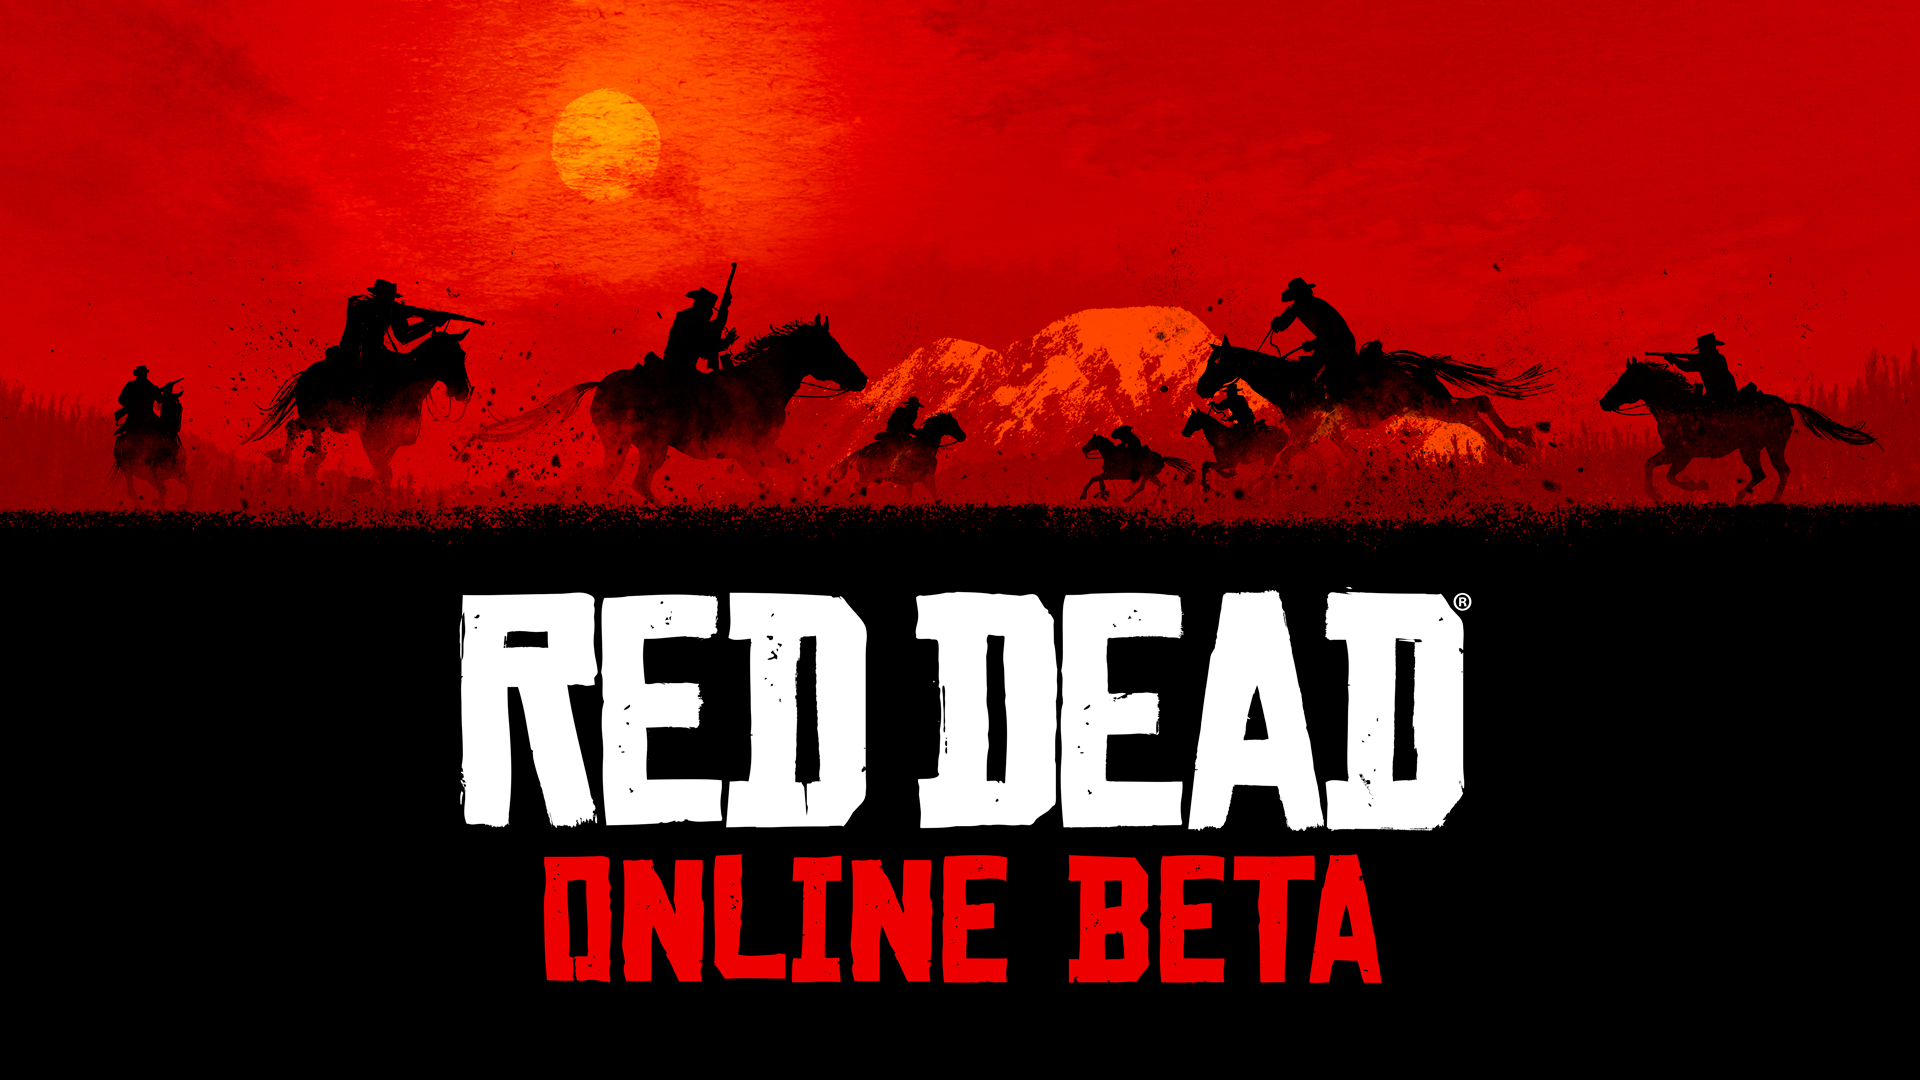 Red Dead Redemption 2 Online Beta Release Dates Announced, And It's Soon!